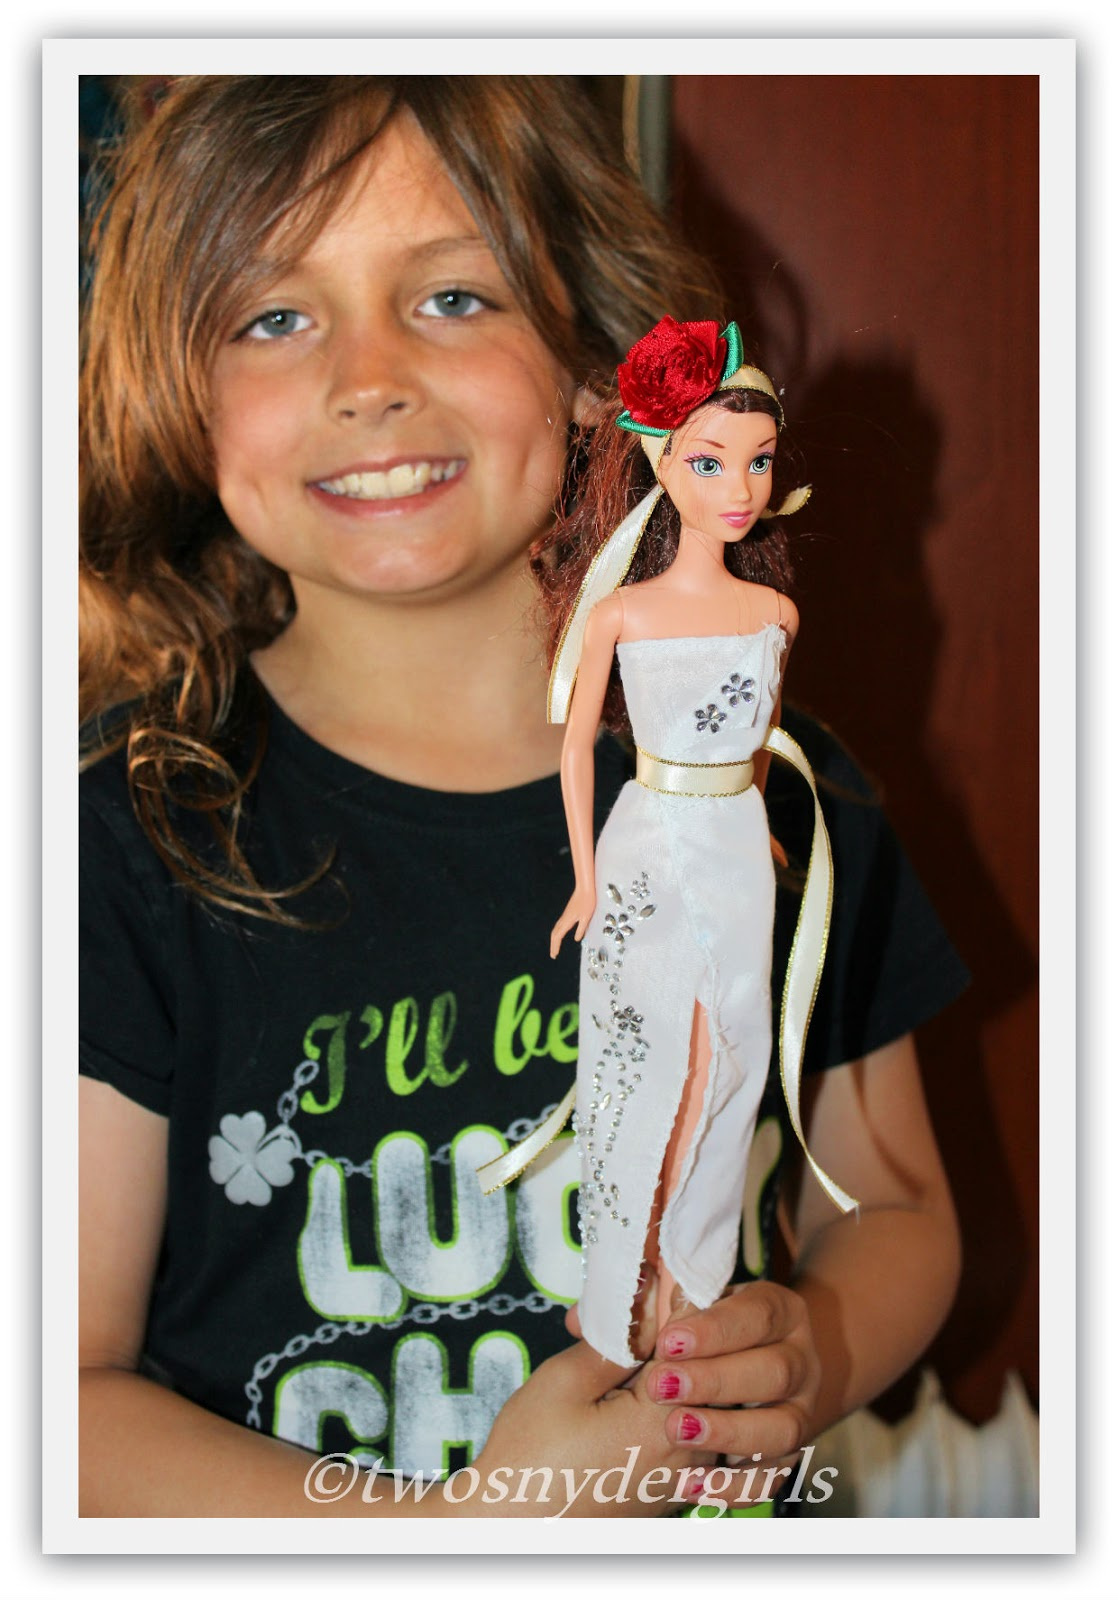 Young girl smiling holding her Barbie Doll clothing design